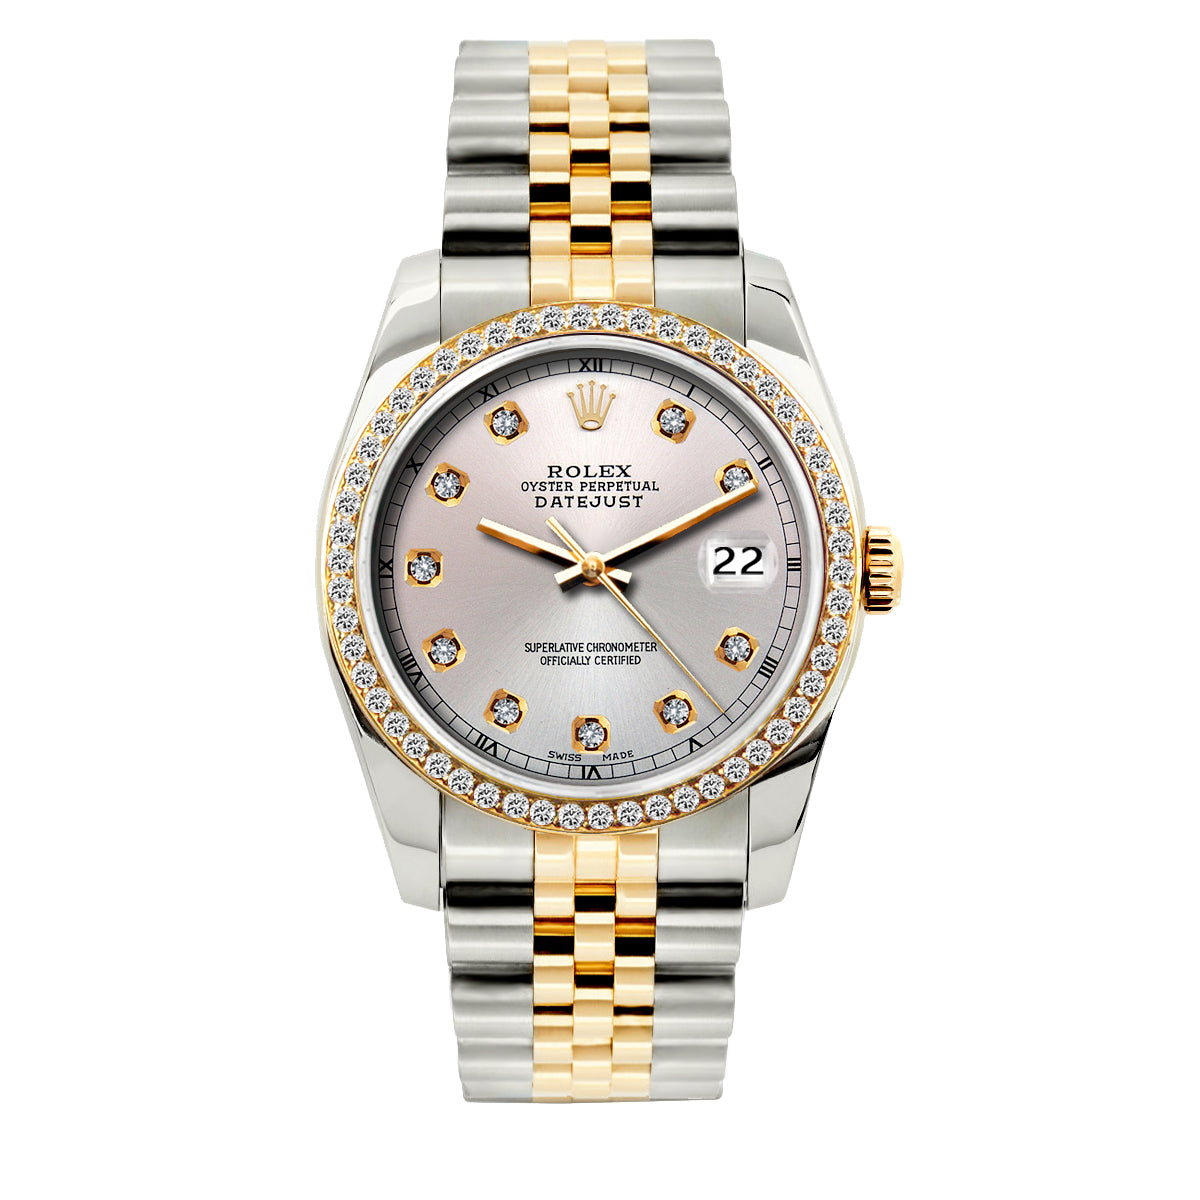 Rolex Datejust Diamond Watch, 36mm, Yellow Gold and Stainless Steel Bracelet Light Lavender Dial w/ Diamond Bezel